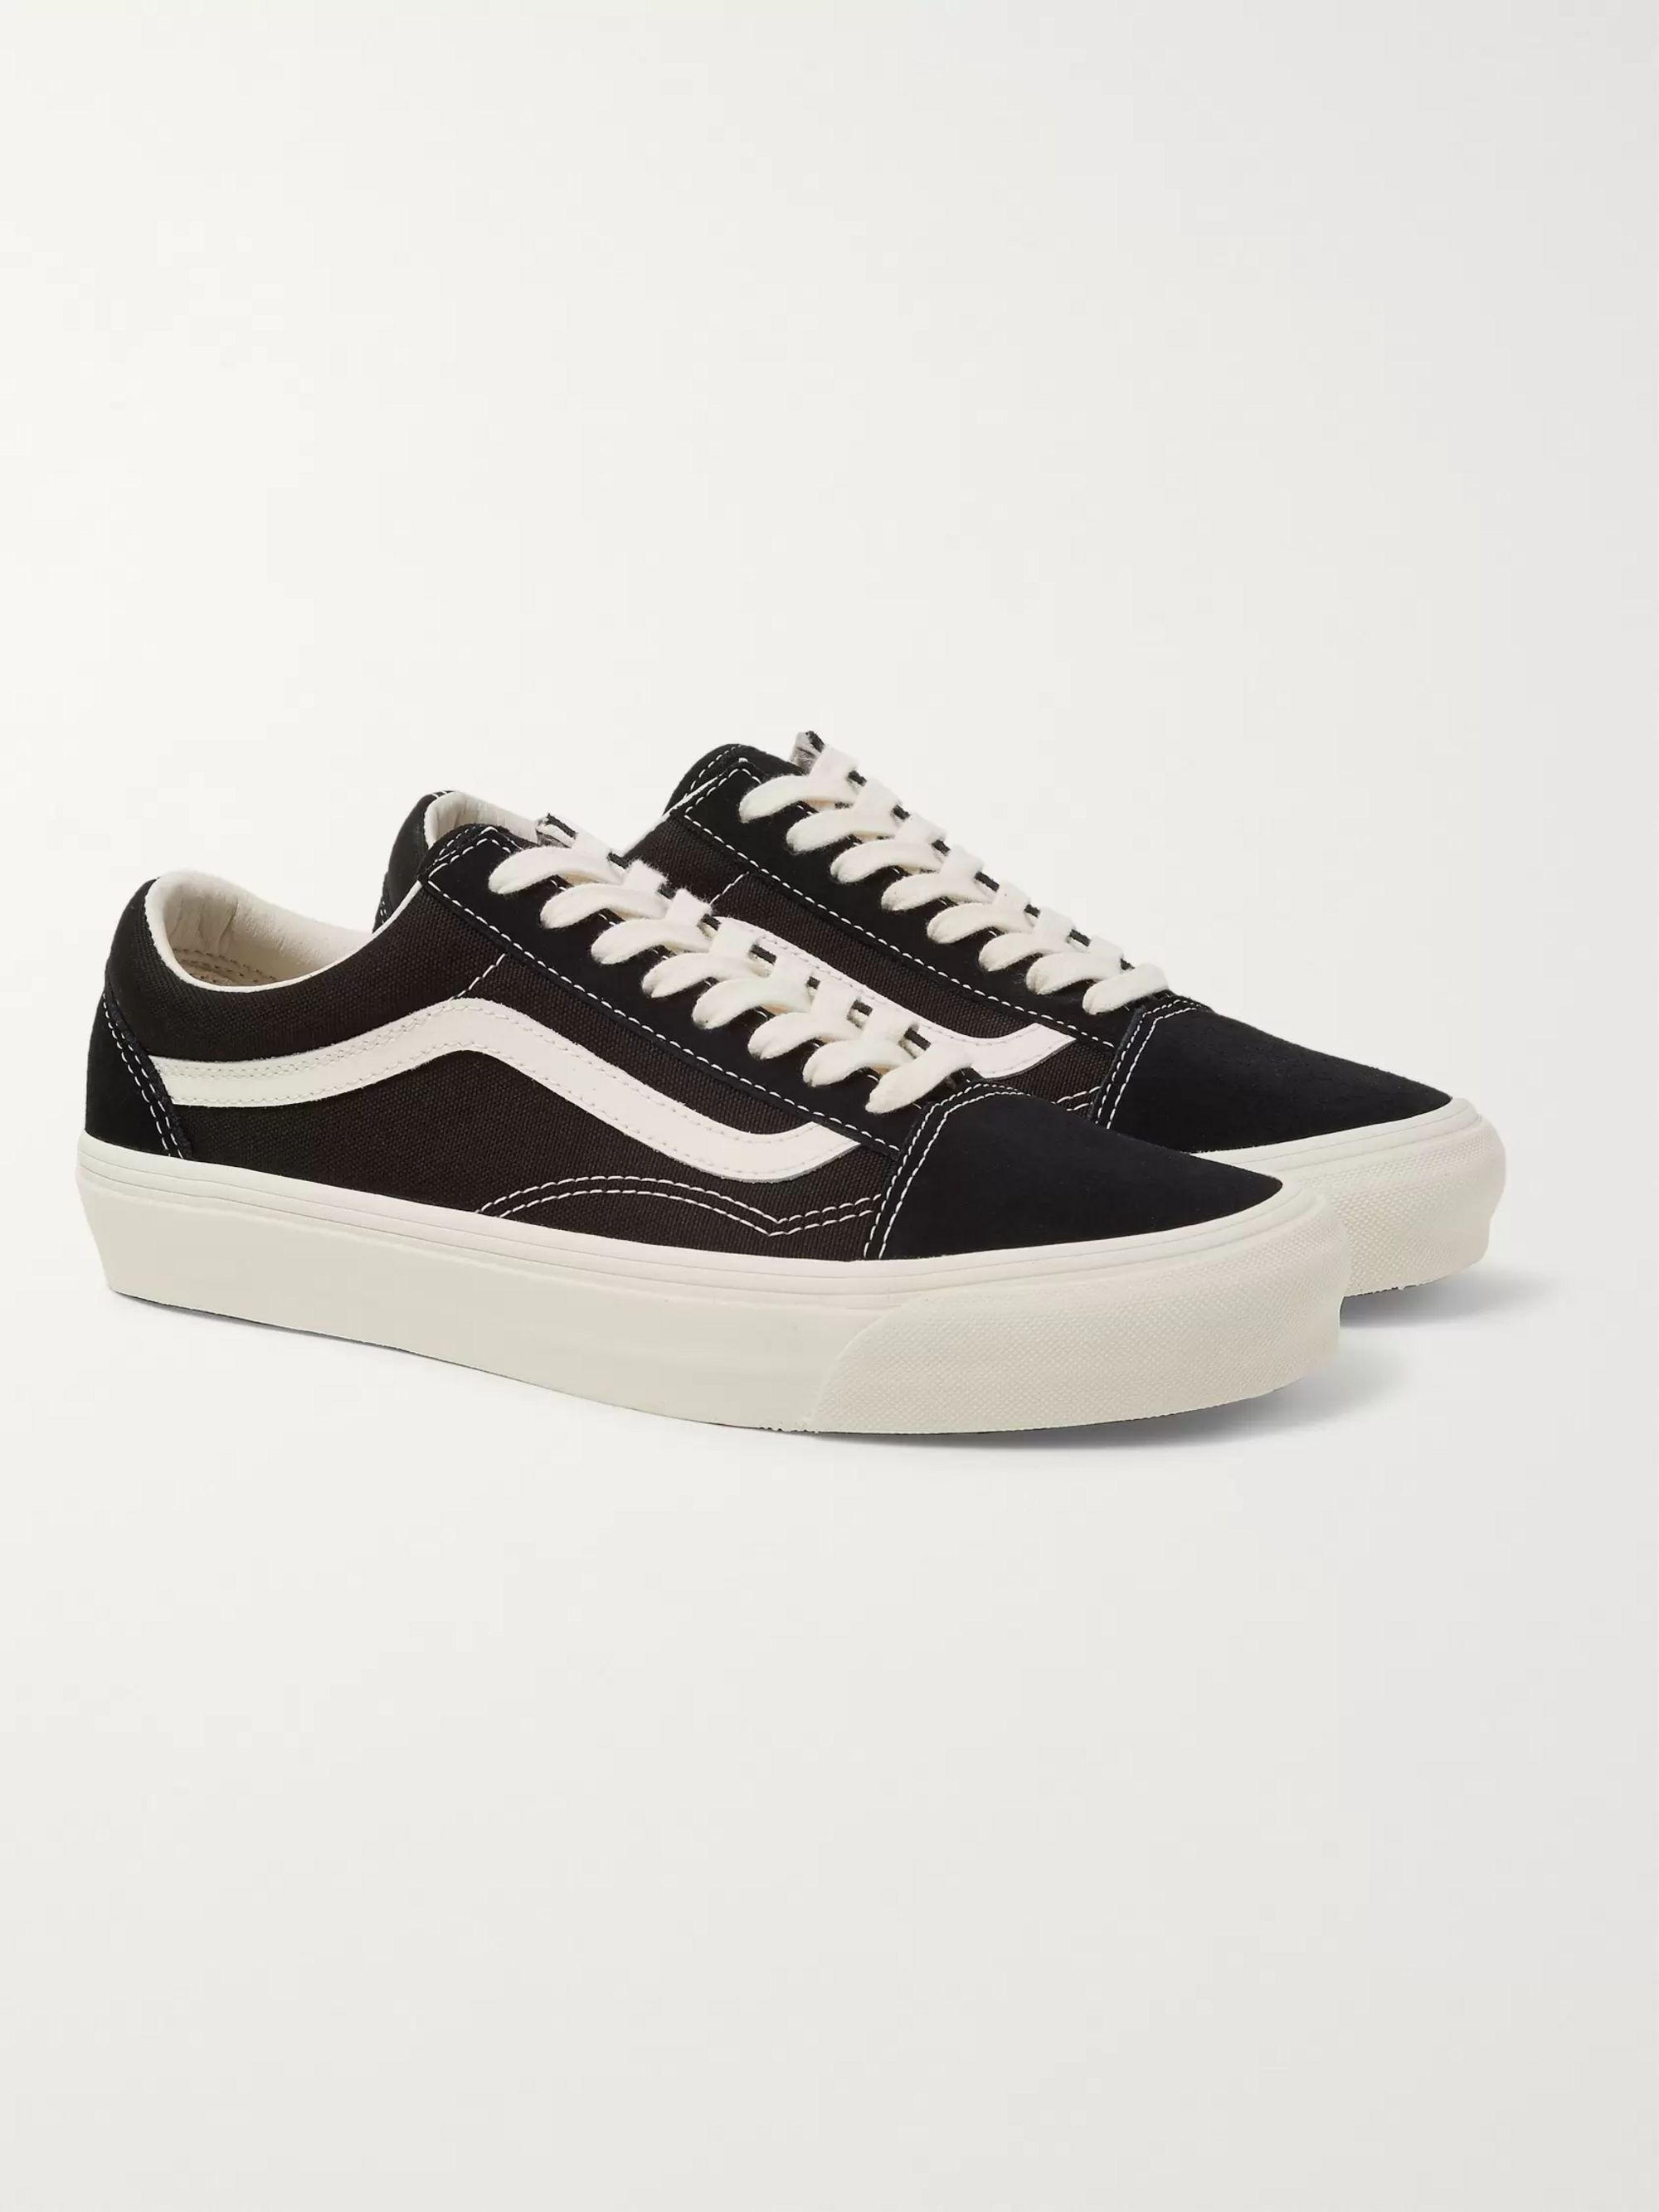 Vans OG Old Skool LX Leather-Trimmed Canvas and Suede Sneakers